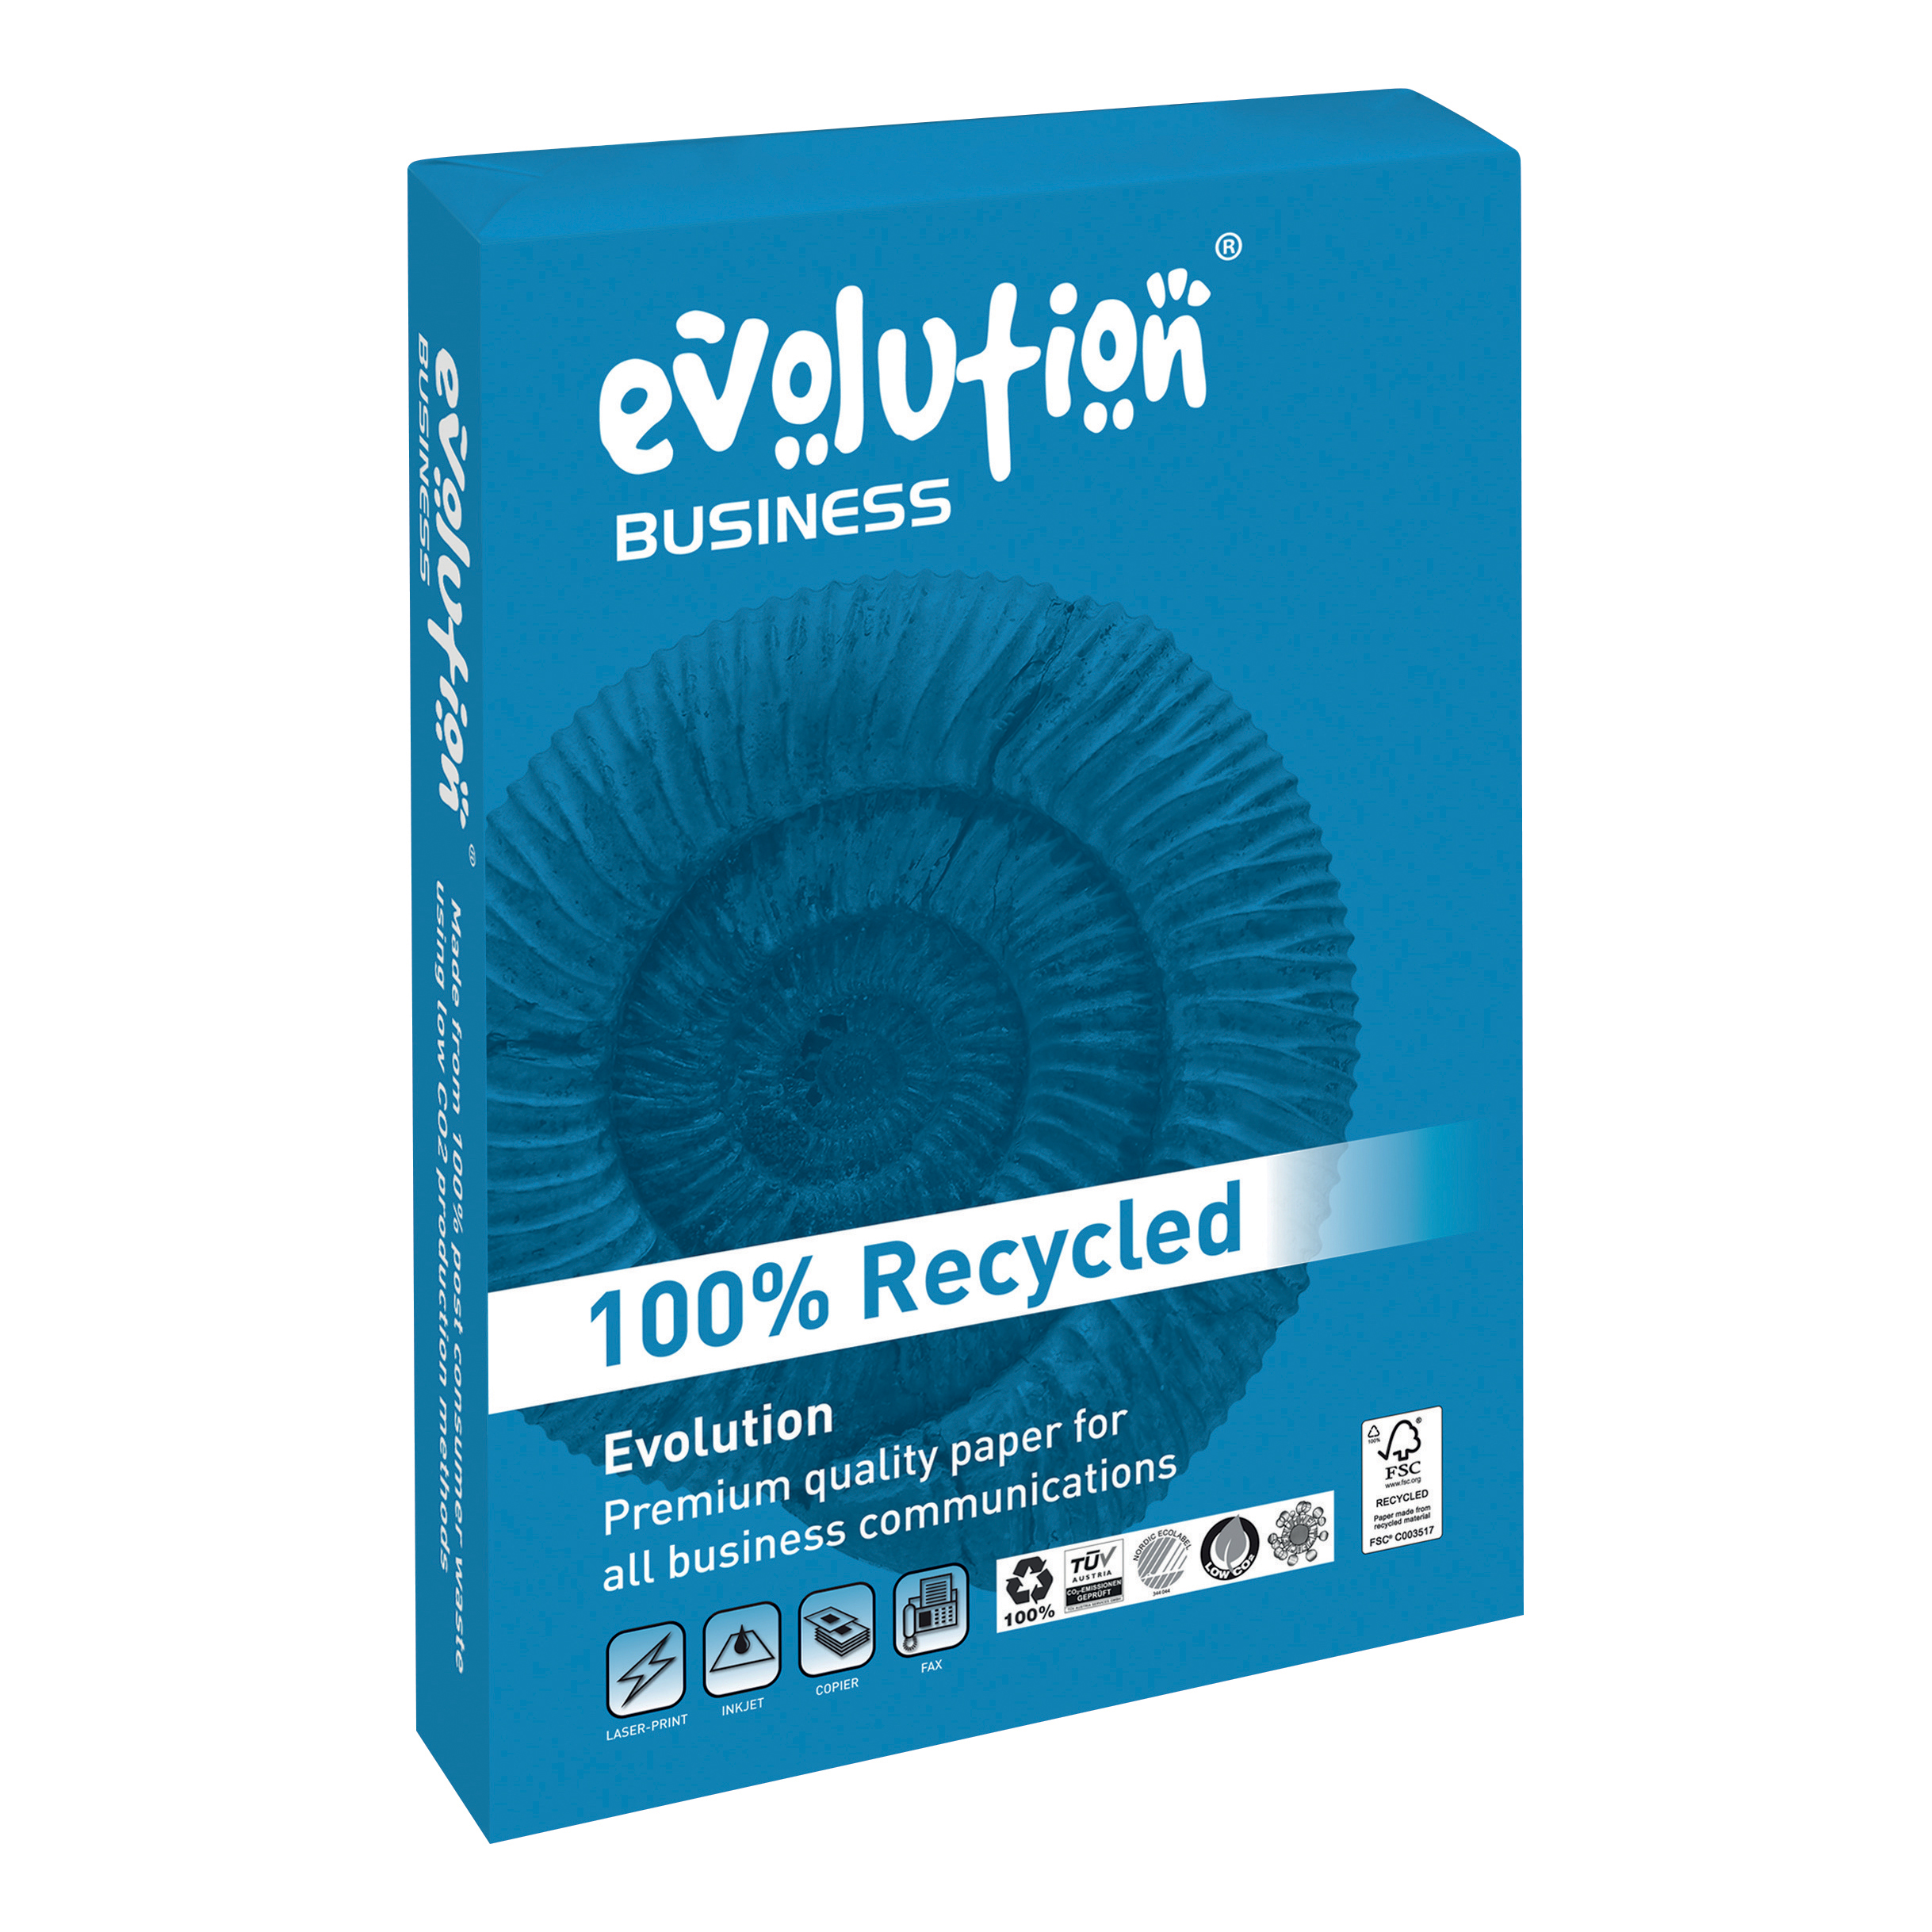 Evolution Business Paper FSC Recycled Ream-wrapped 80gsm A3 White Ref EVBU4280 500 Sheets